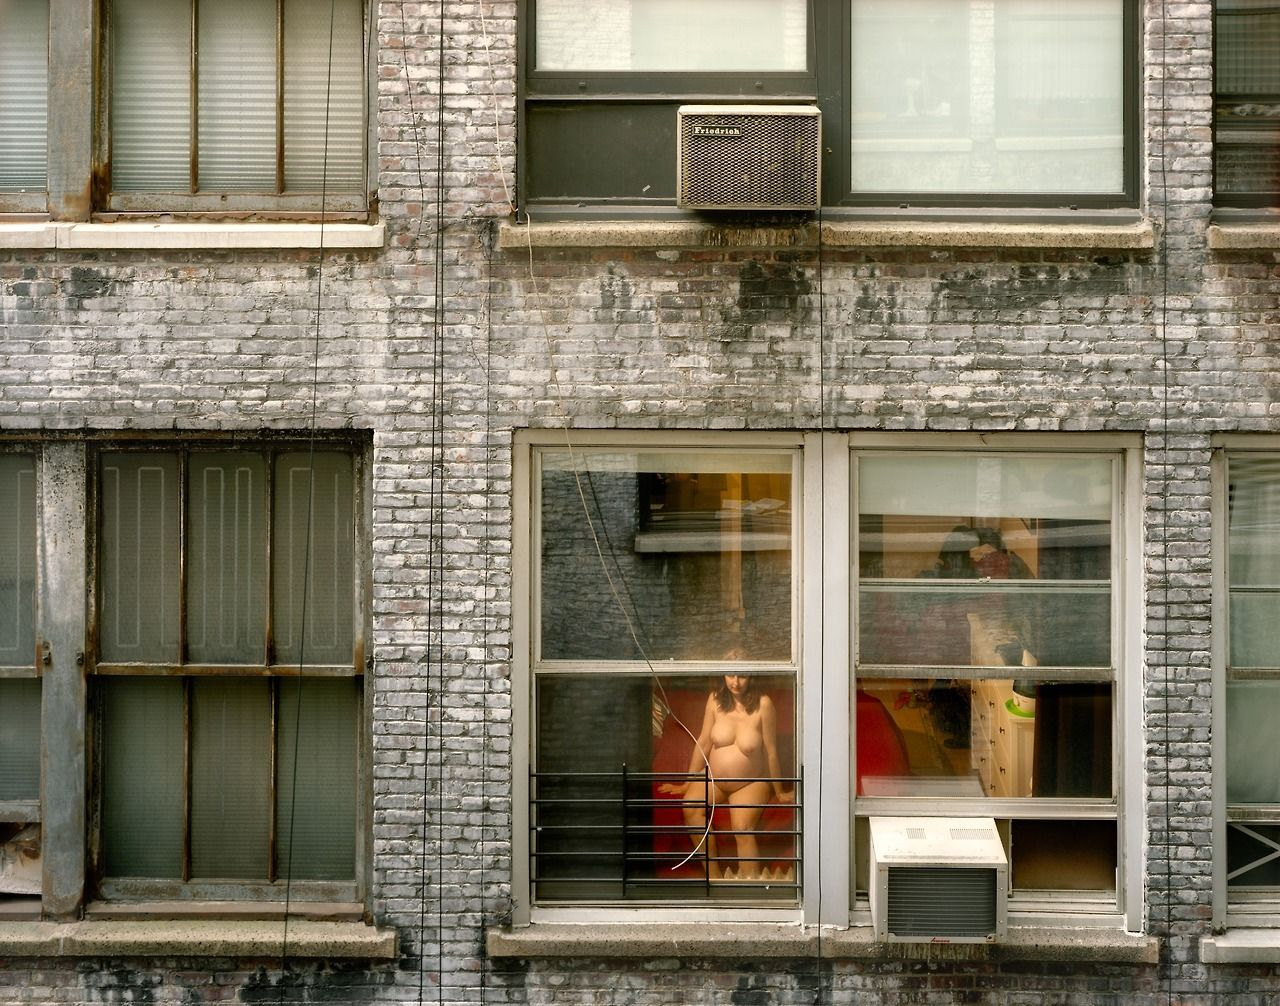 Gail Albert Halaban (American, b. 1970) Out My Window, Chelsea, Expecting, 2010